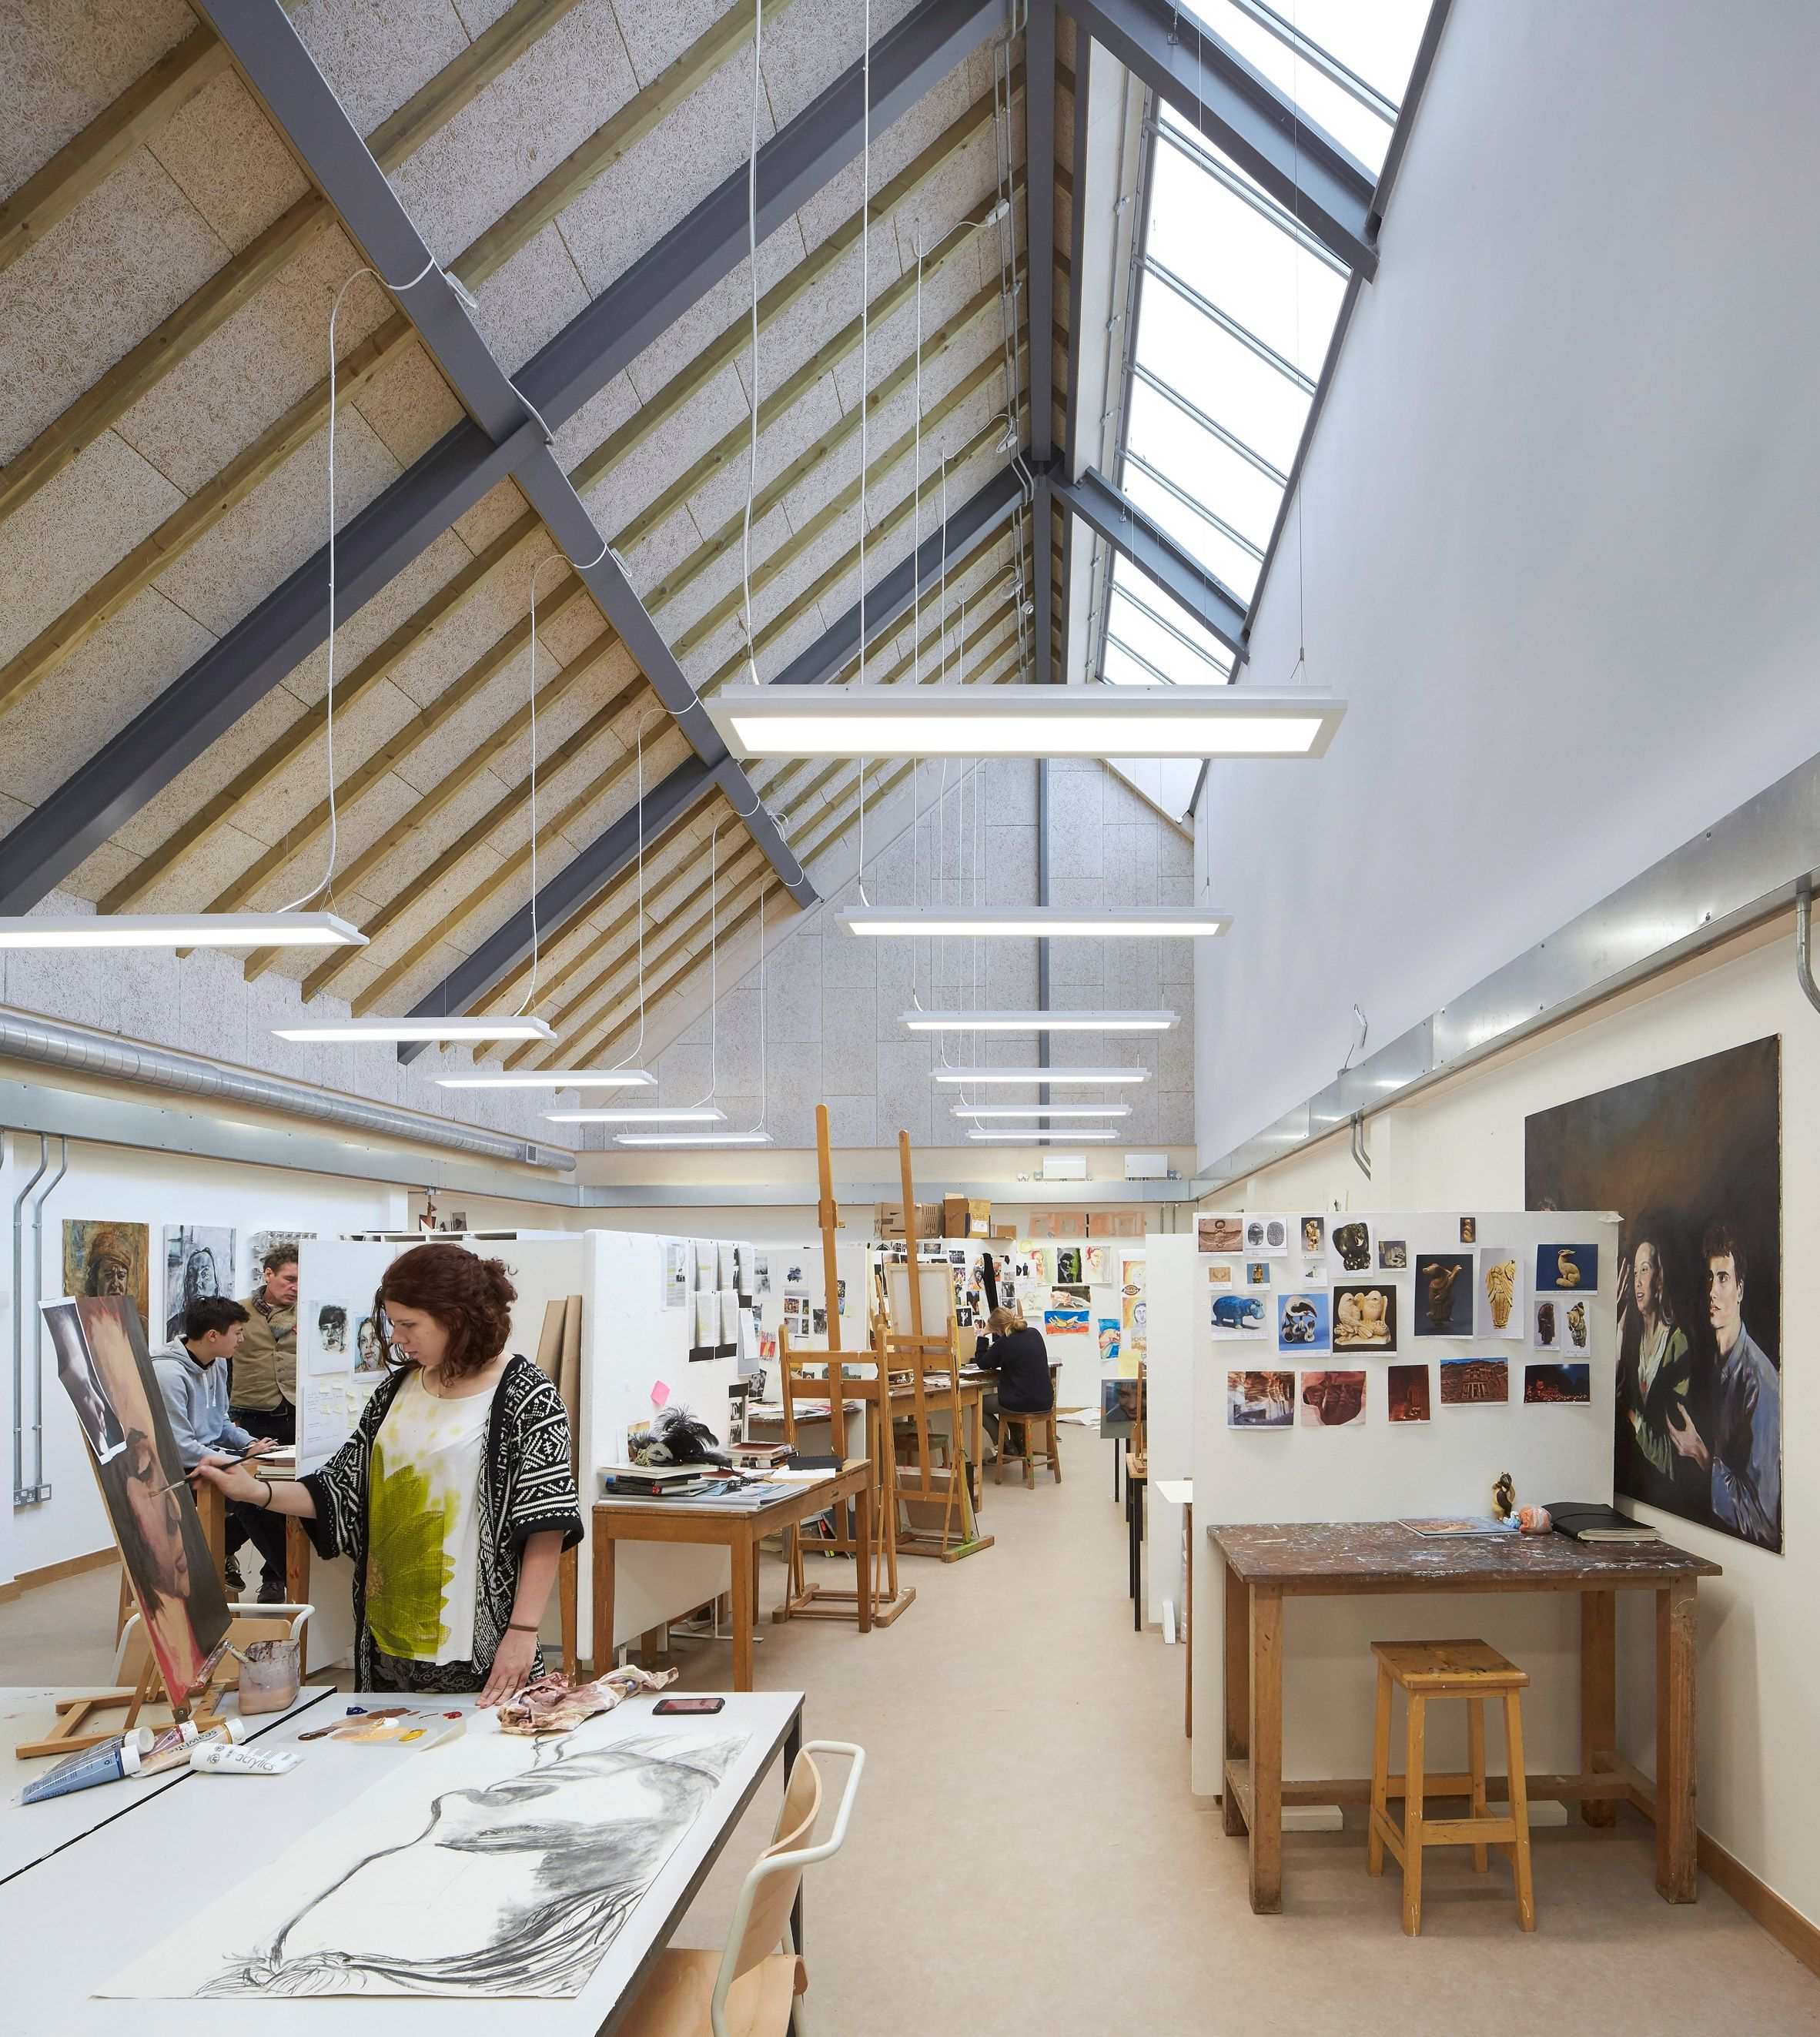 Feilden Clegg Bradley creates barninspired art building